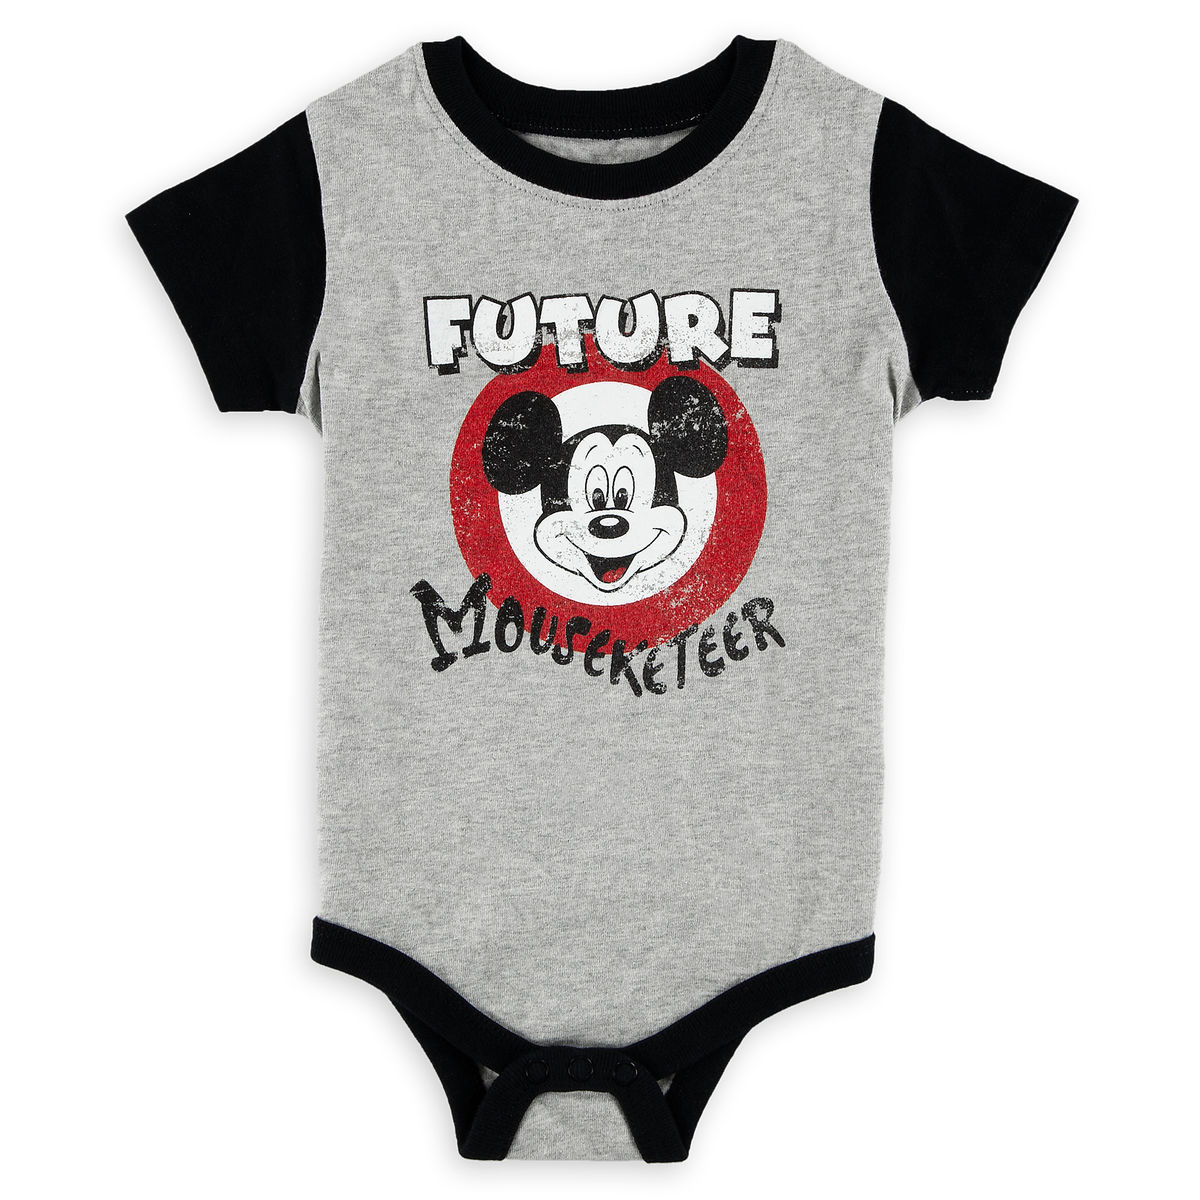 b245e3cfc Disney Bodysuit for Baby - Mickey Mouse Club - Future Mouseketeer